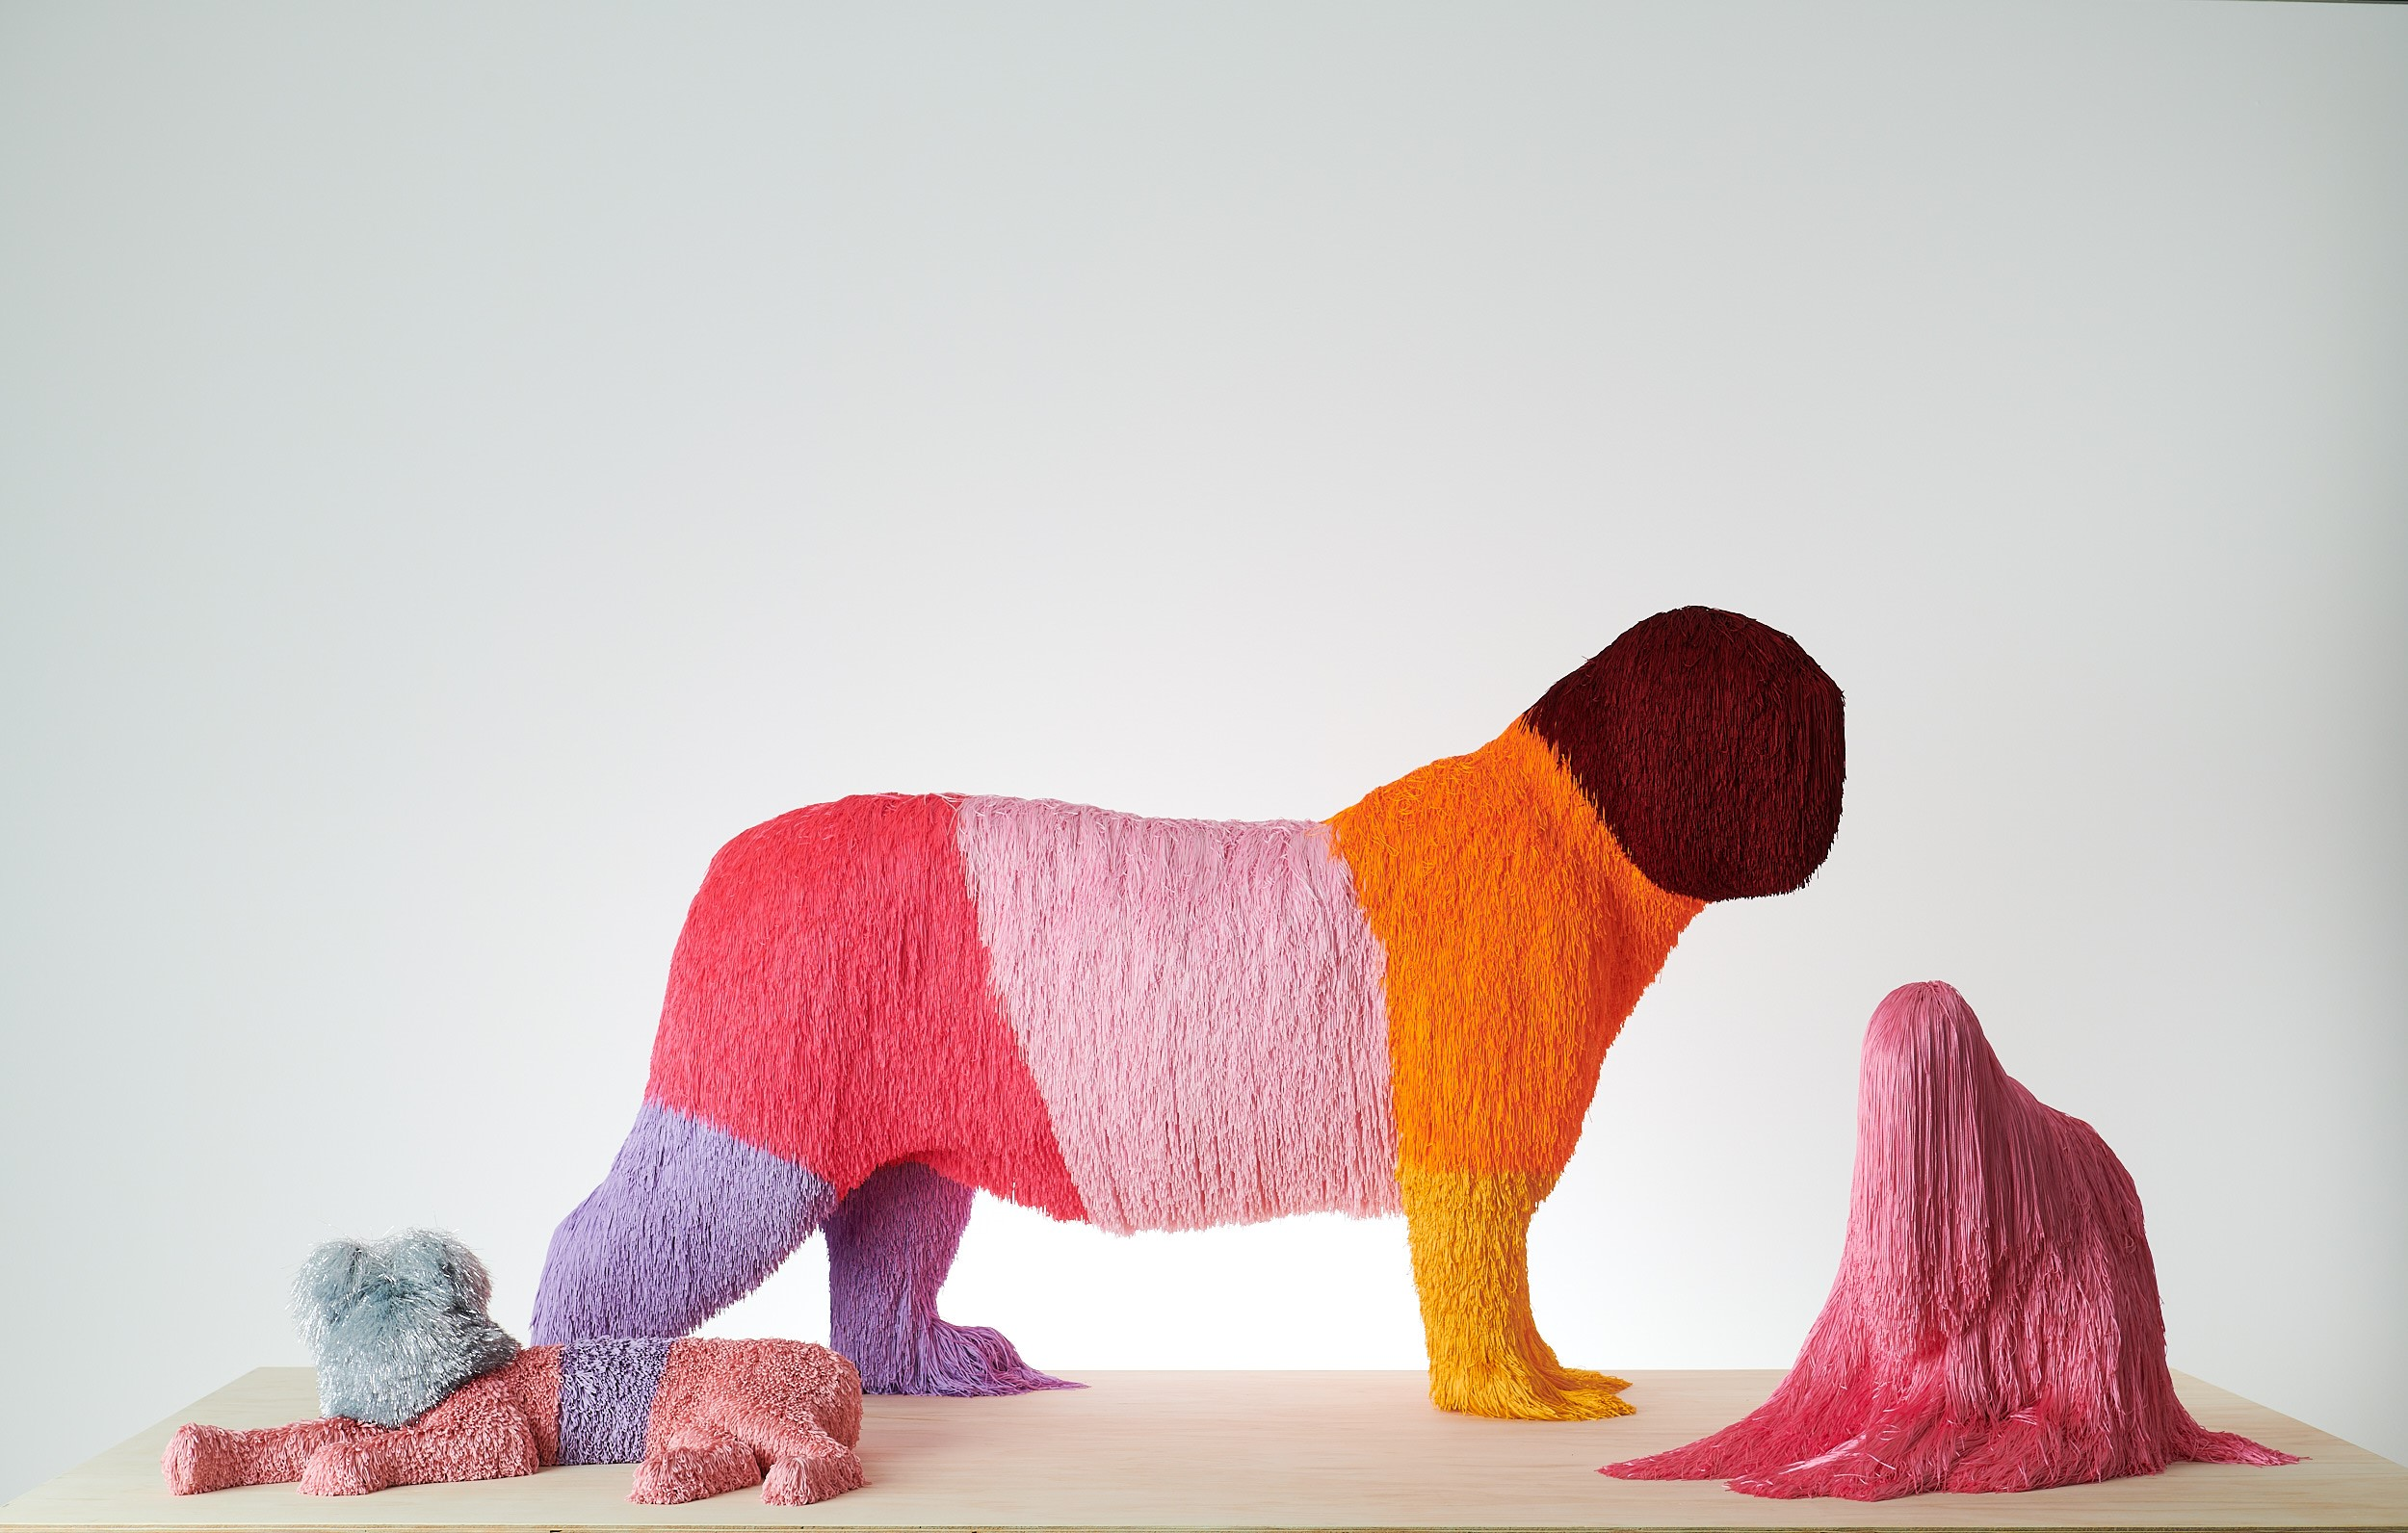 Troy Emery,  lilac layabout, pink bandit beast, second lump , 2018, polyester, polyurethane, pins, adhesive, various dimensions. Photo_Fred Kroh